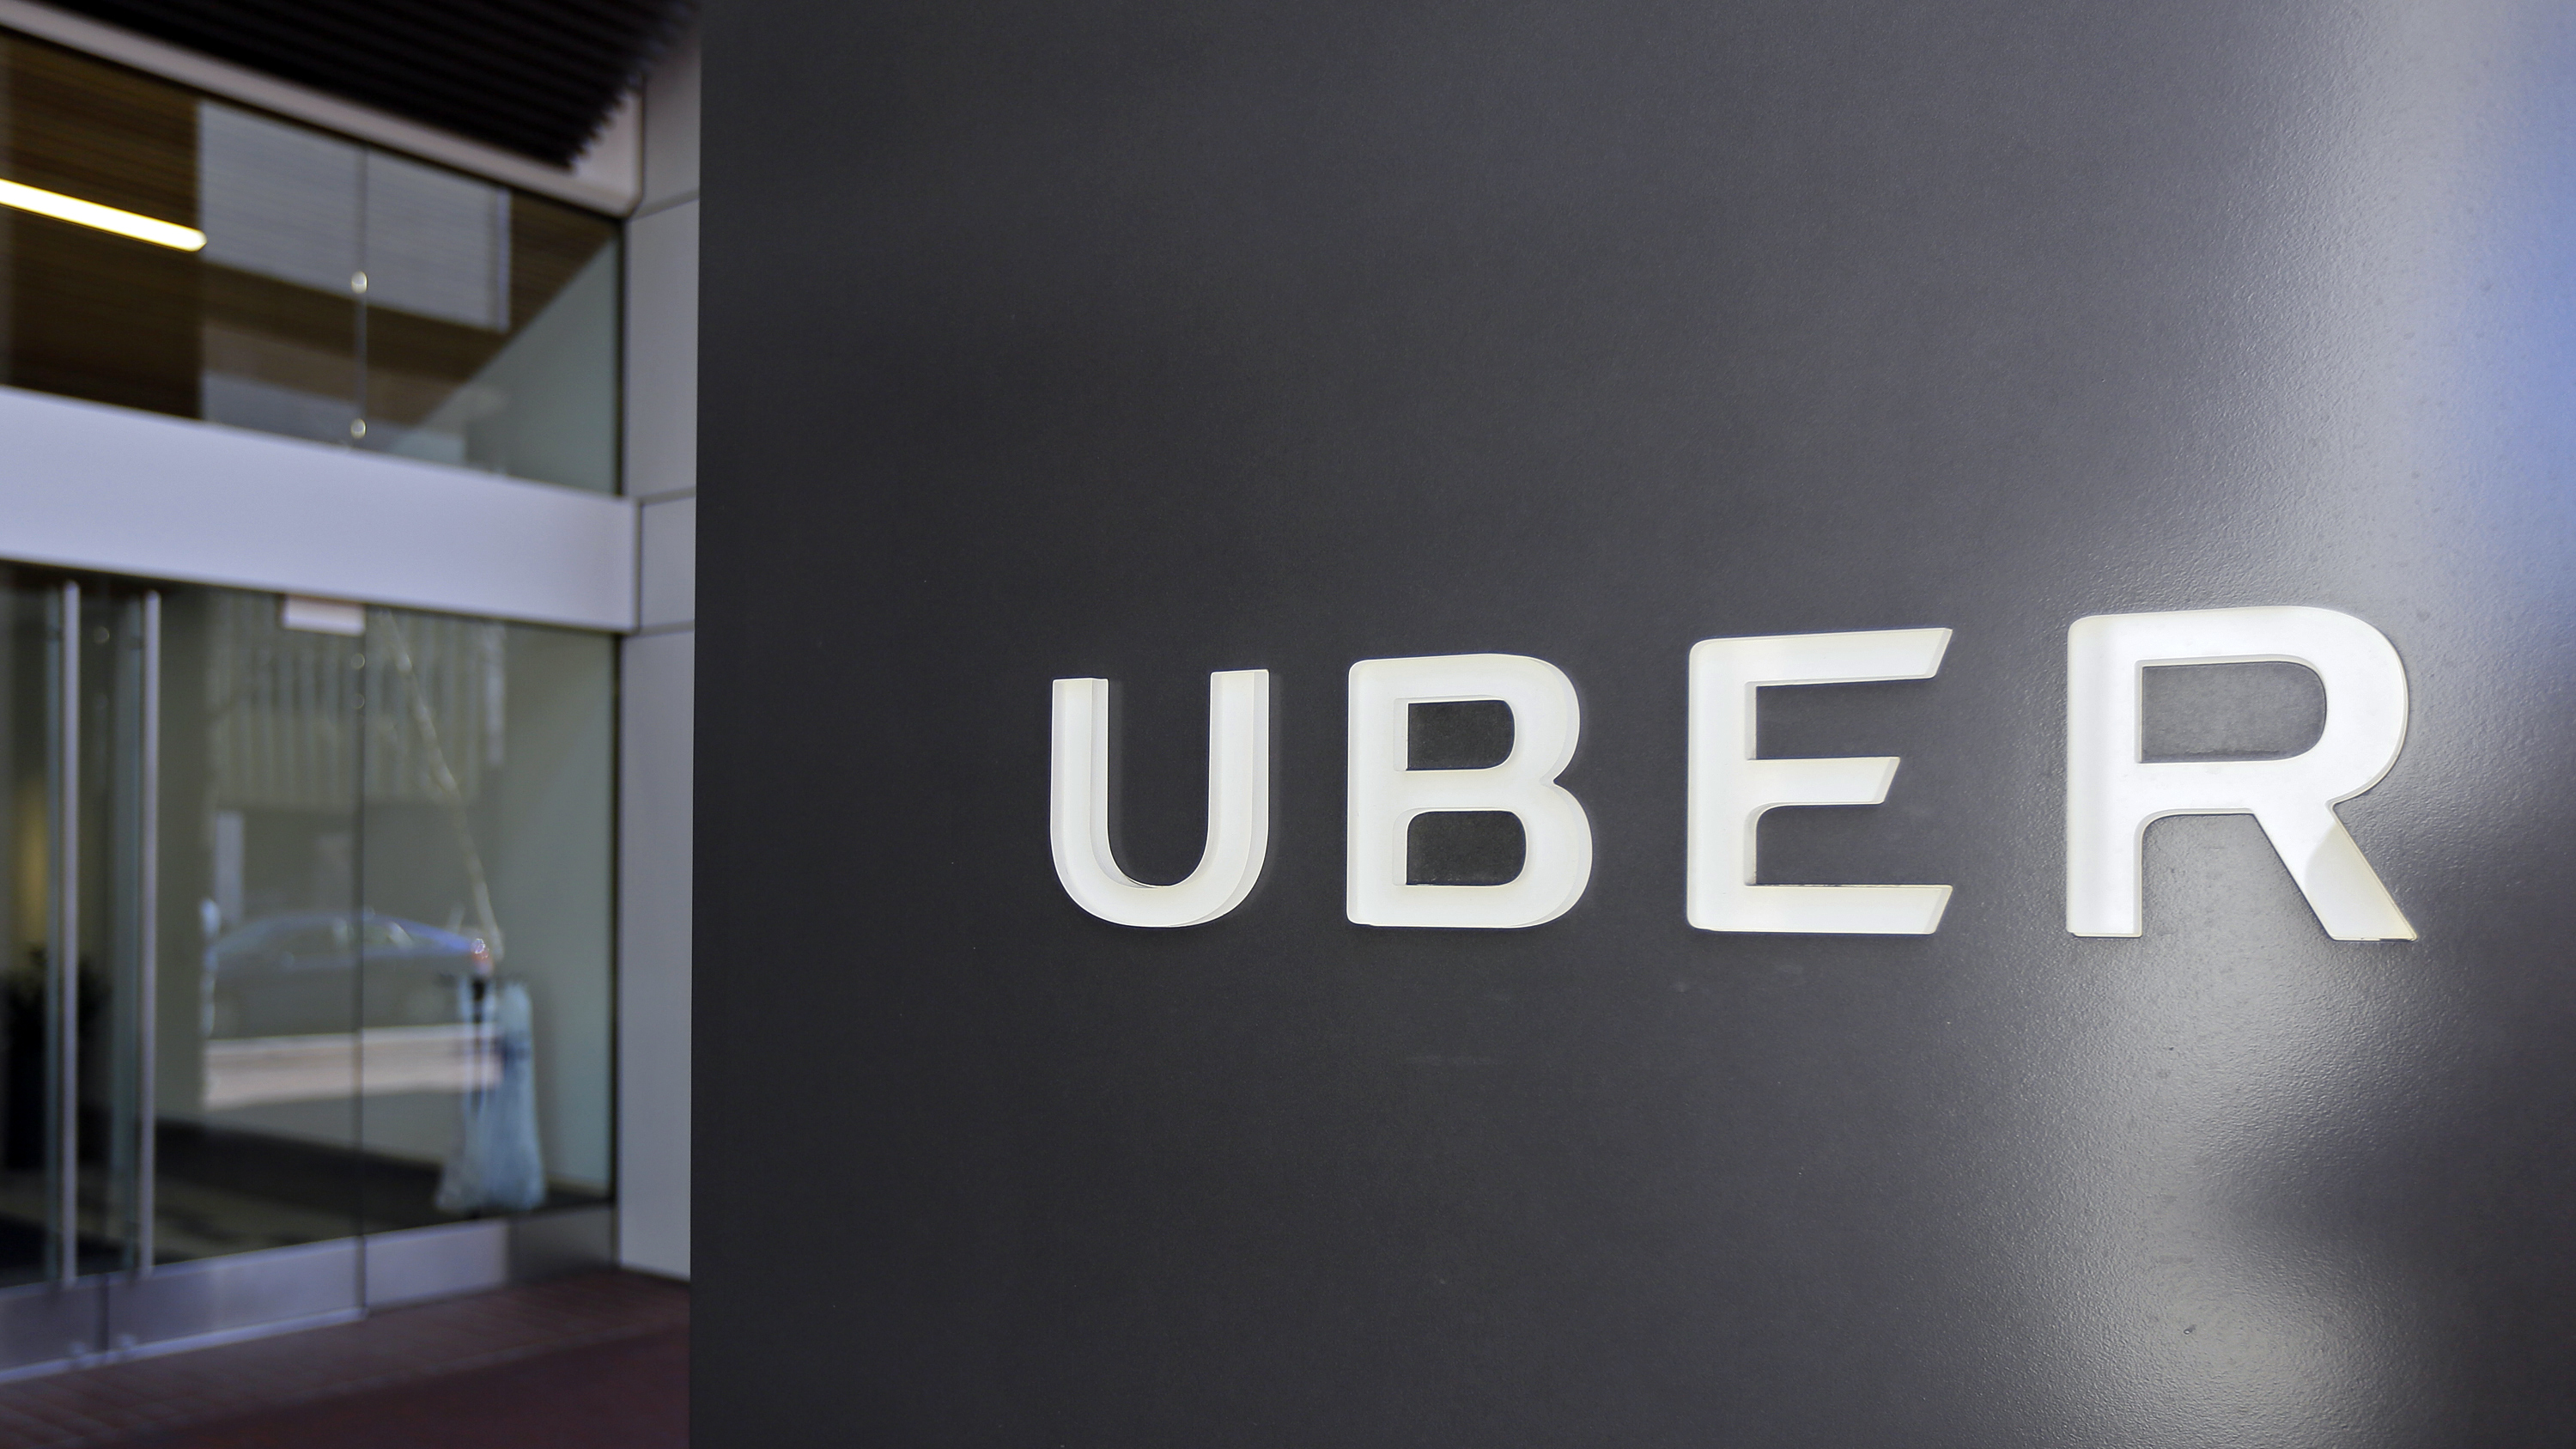 Uber's CEO takes leave as recommended by outside team